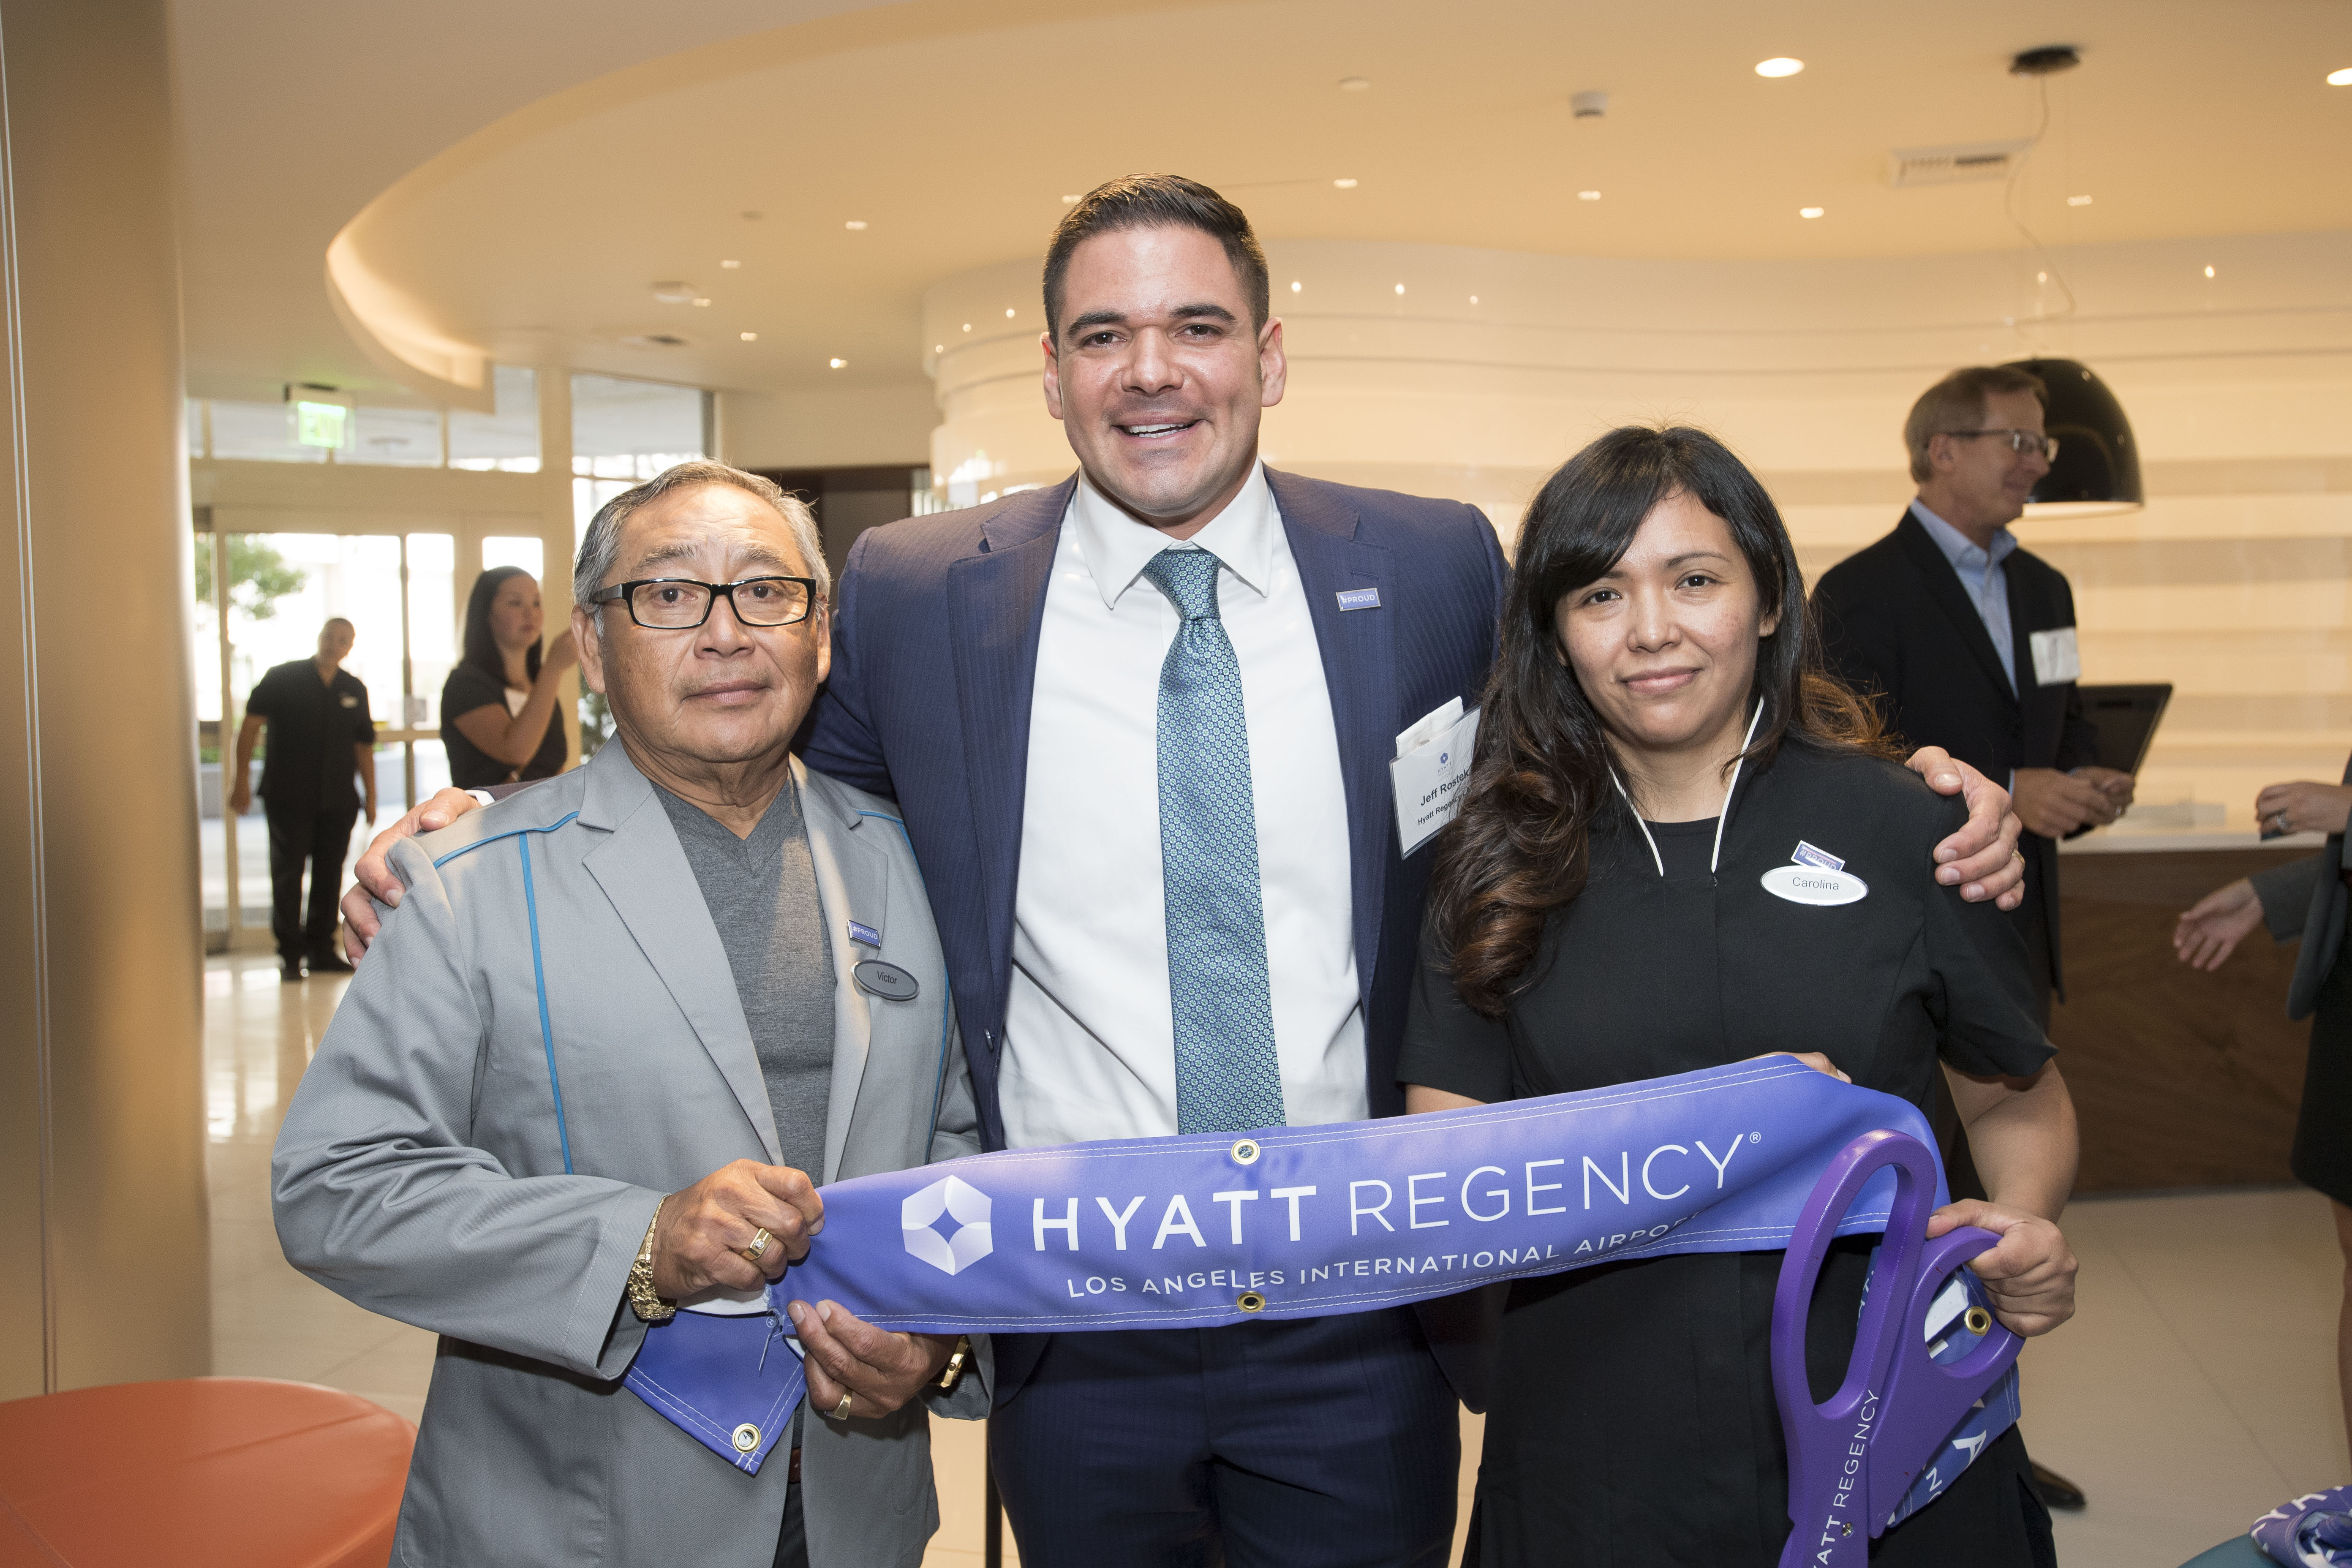 A ribbon cutting ceremony marks the brand transition of The Concourse Hotel at Los Angeles Airport, a Hyatt affiliated hotel, to Hyatt Regency Los Angeles International Airport. Shown from left to right are Victor Estrella, the longest tenured employee who has worked at the hotel for 37 years, Jeff Rostek, the hotel's managing director, and Carolina Barrera, the most recently hired employee. (Photo: Business Wire)